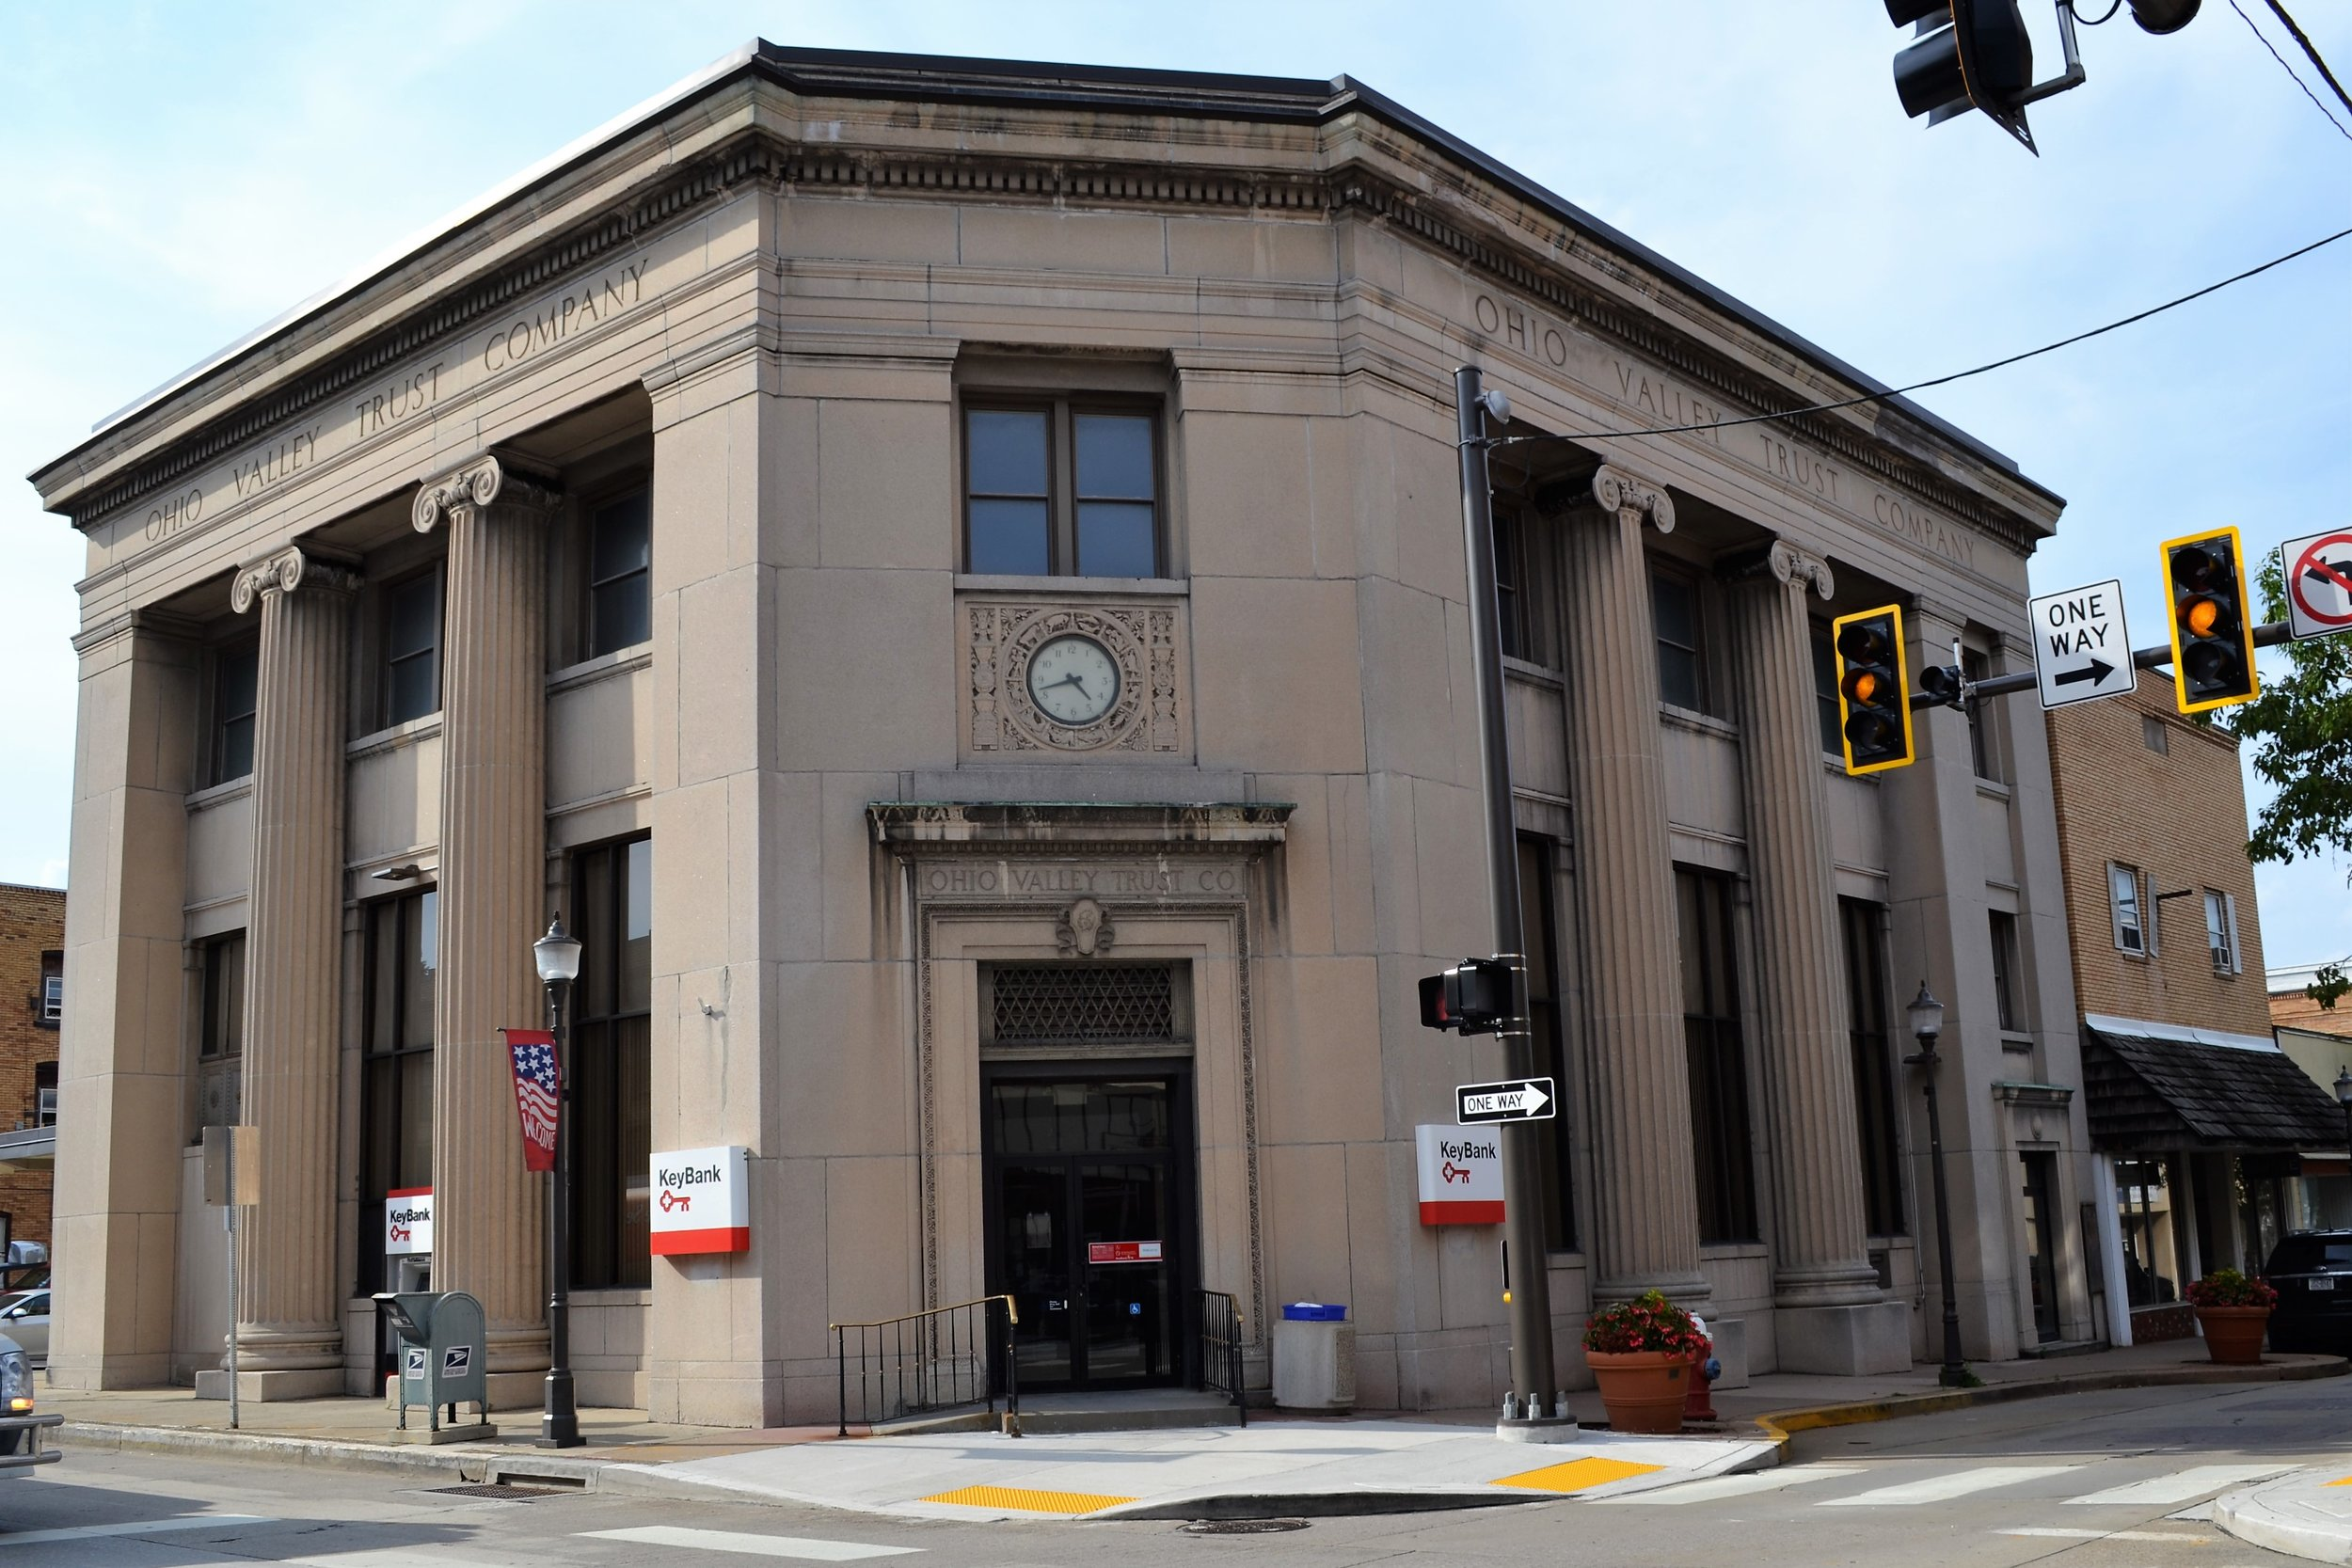 KeyBank - 953 5th Ave, (412) 264-7612